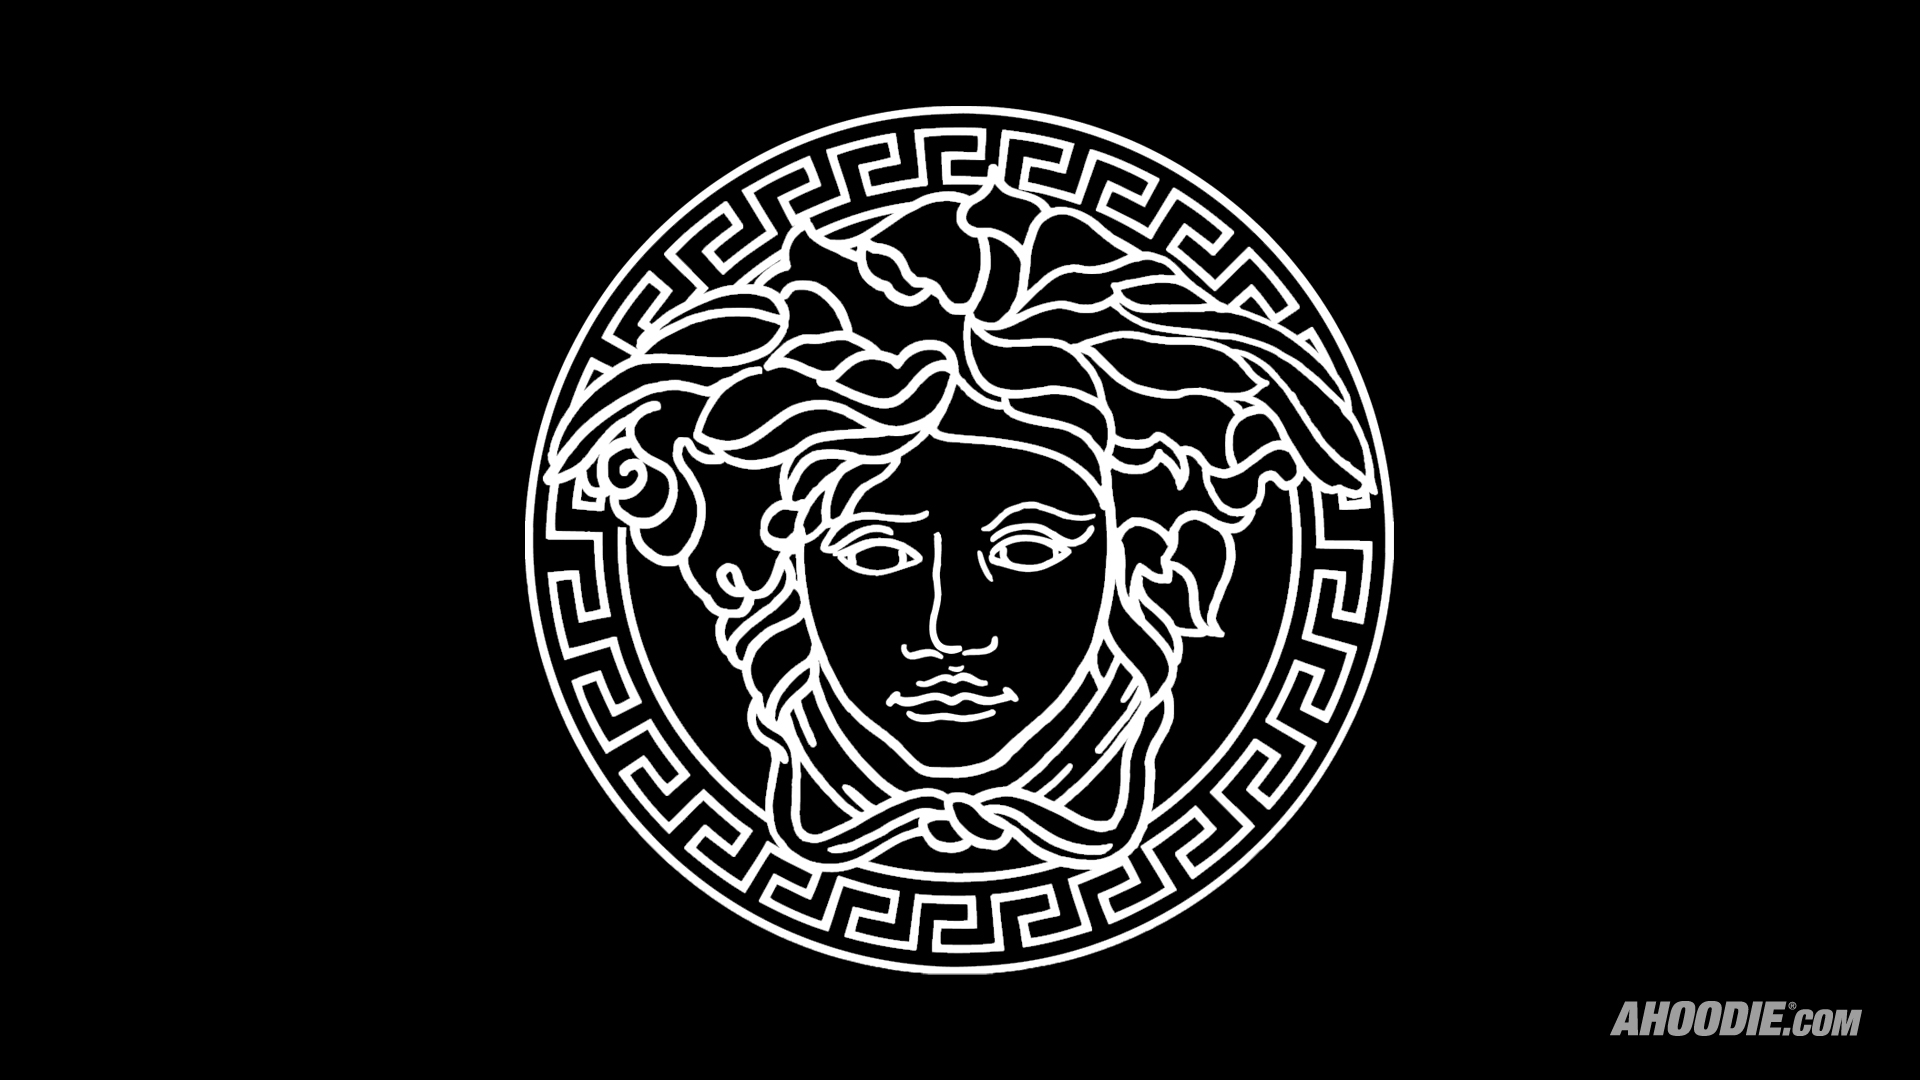 Versace Wallpaper Hd HD Wallpapers on picsfaircom 1920x1080